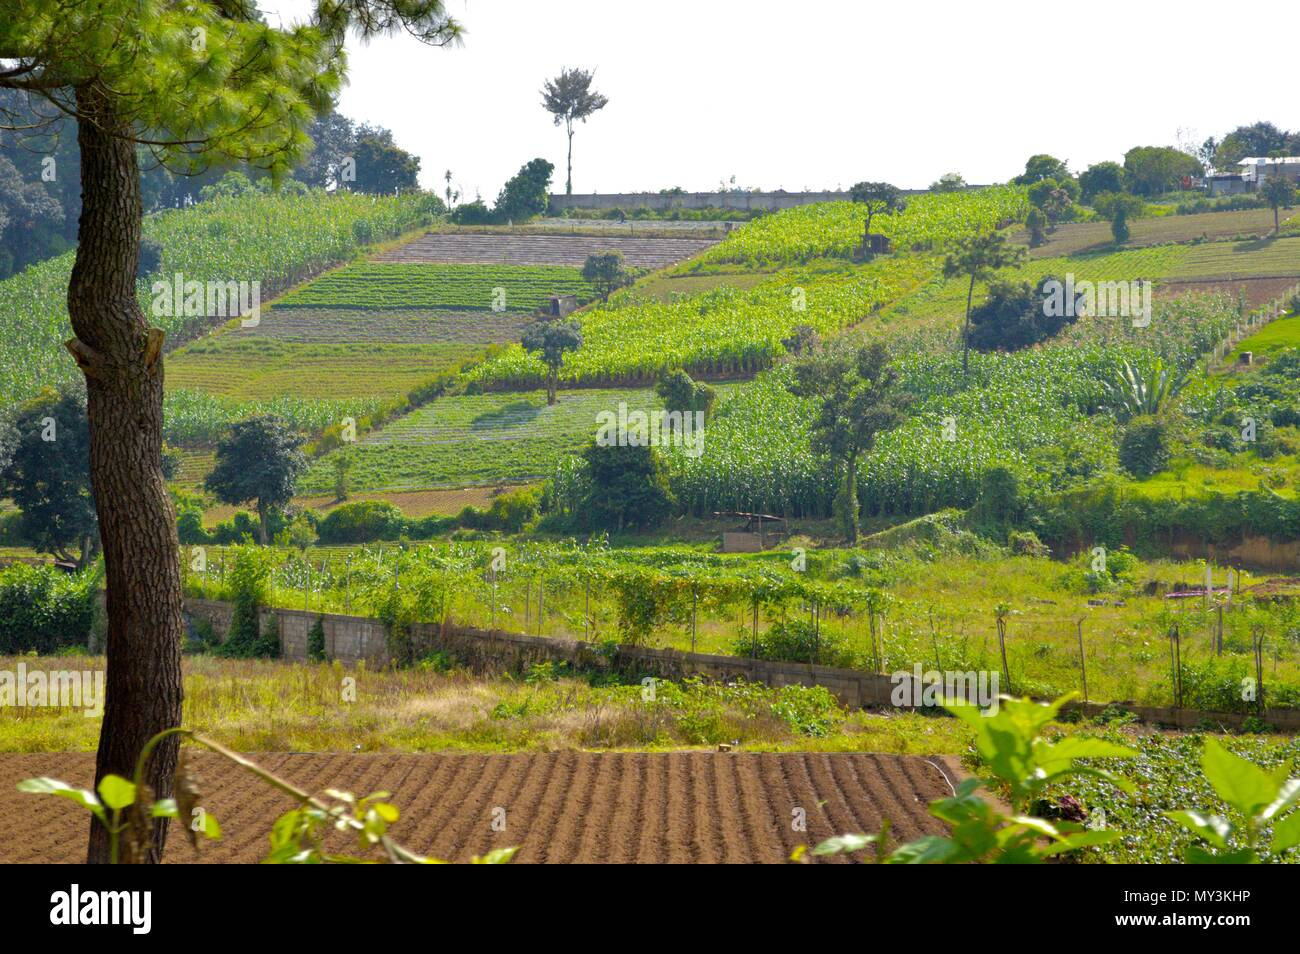 Many crops at Guatemalan roads - Stock Image